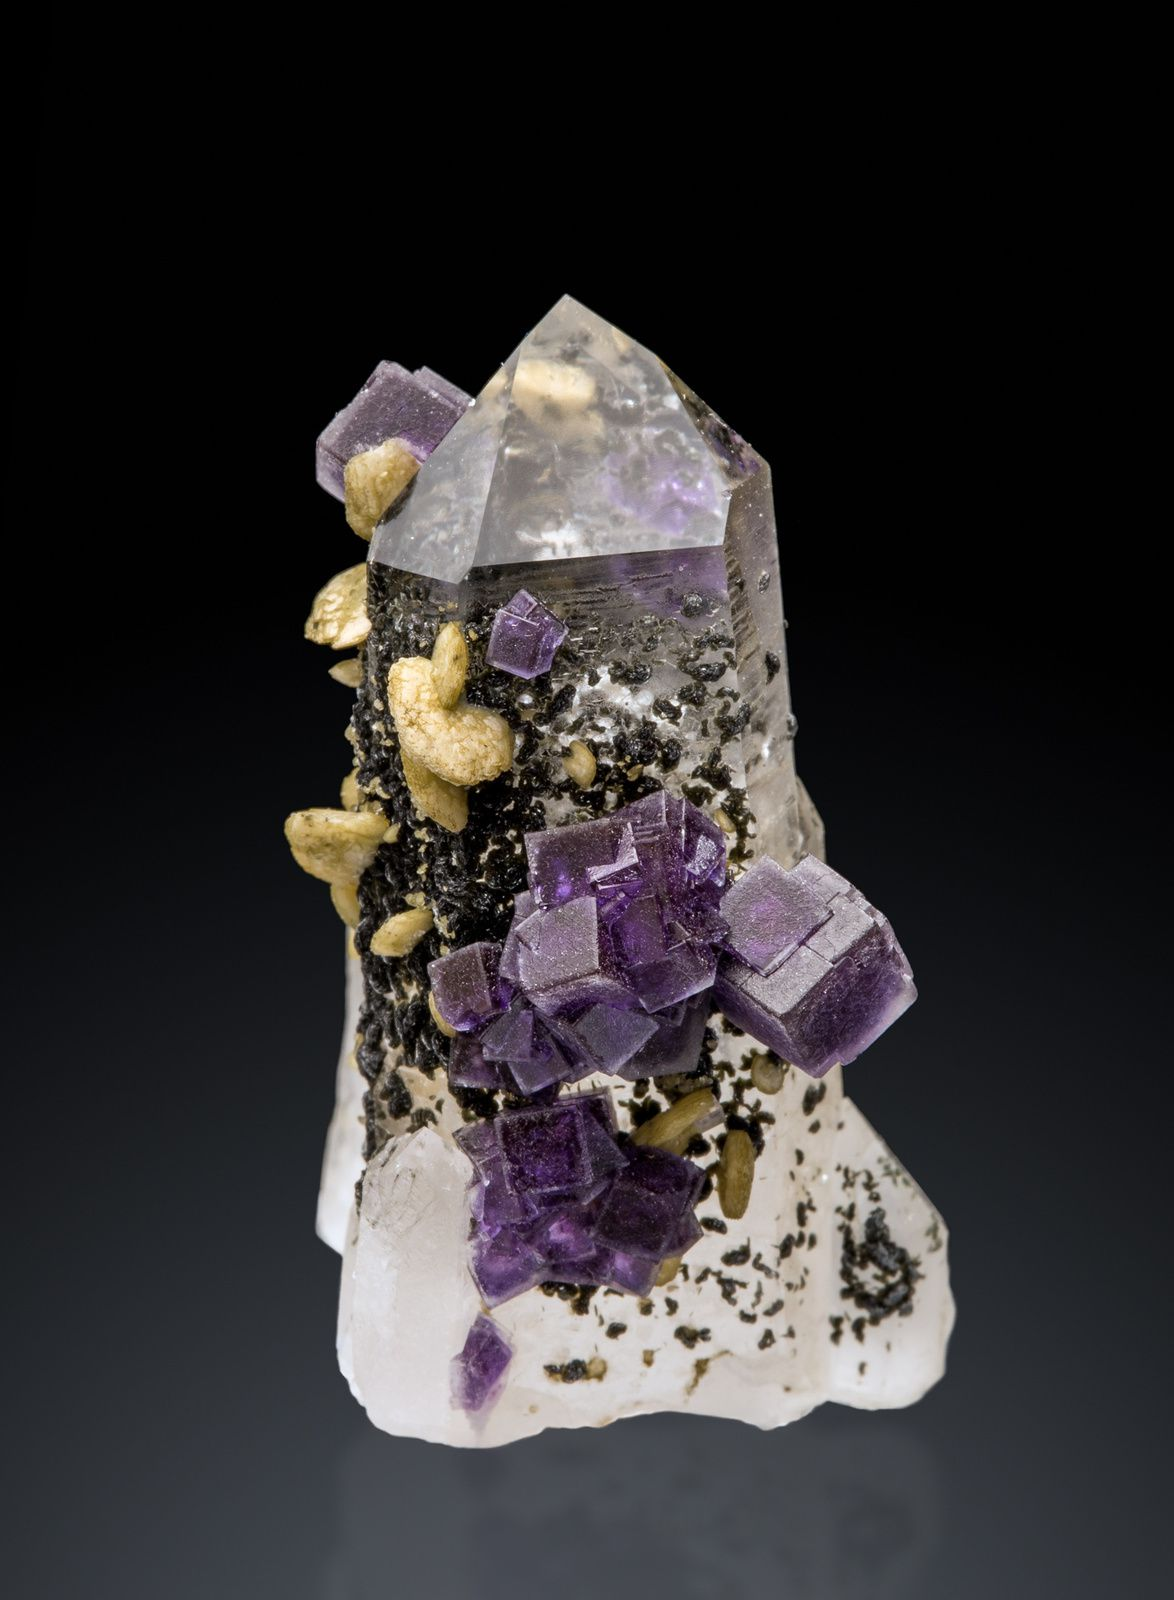 Fluorite Quartz Siderite from Panasqueira, Castelo Branco, Portugal (specimen and photo by Thomas Spann)